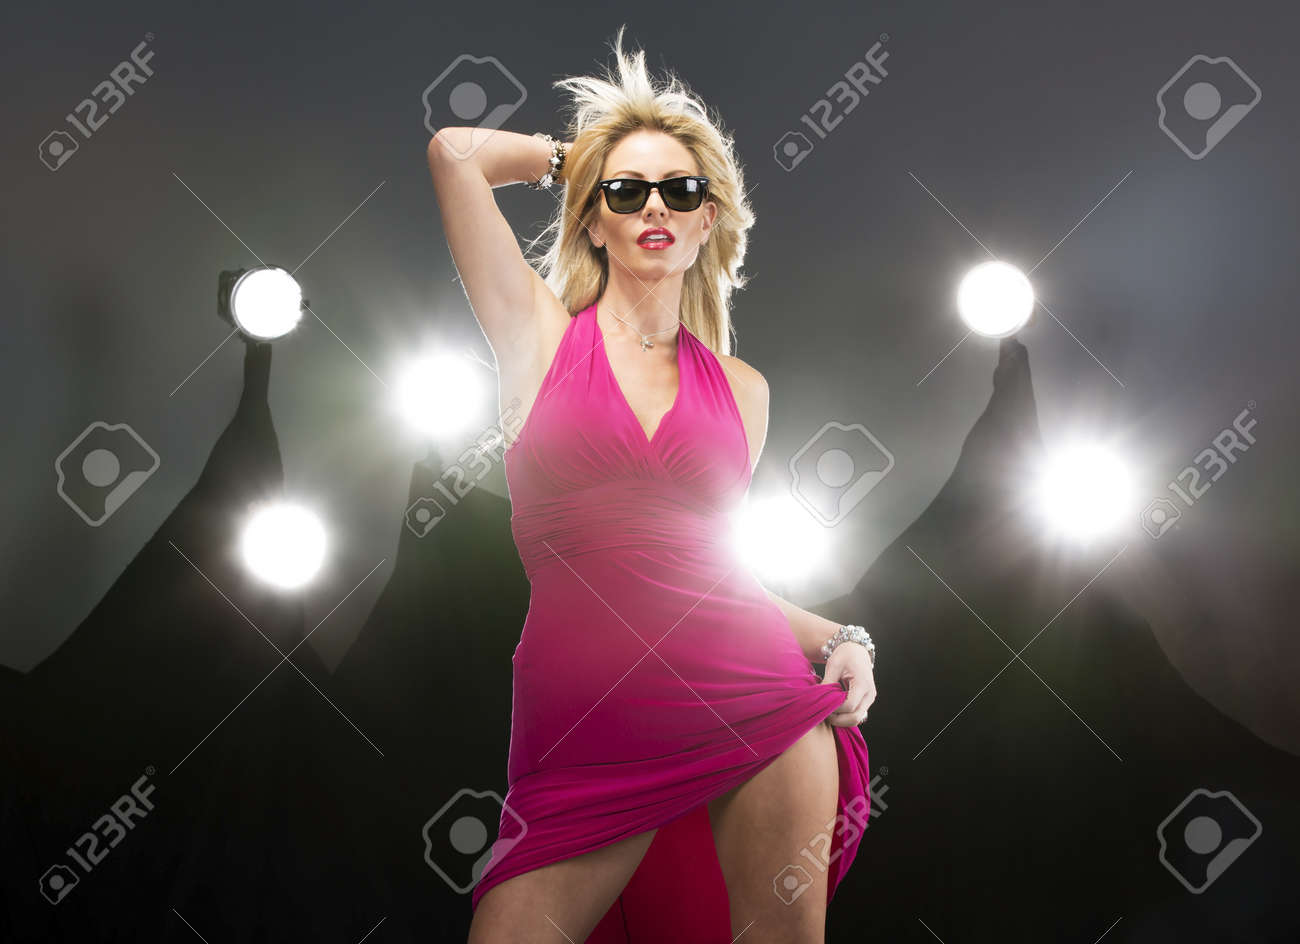 A blonde attractive model poses in a studio environment with lights in the background Stock Photo - 18821475